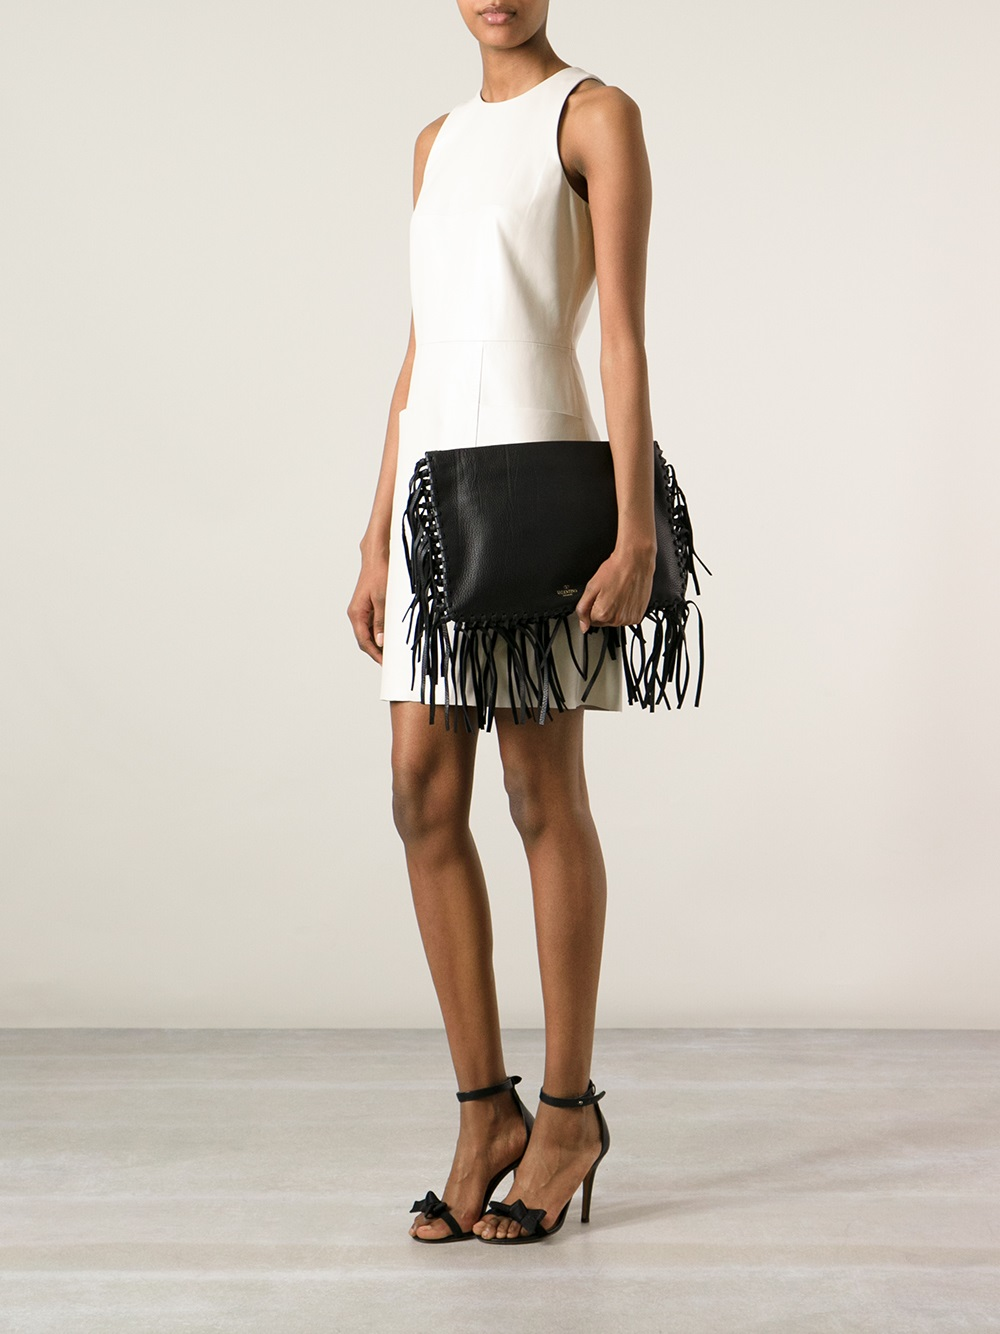 Valentino Garavani Tassel Trim Clutch - Luisa World - Farfetch.com